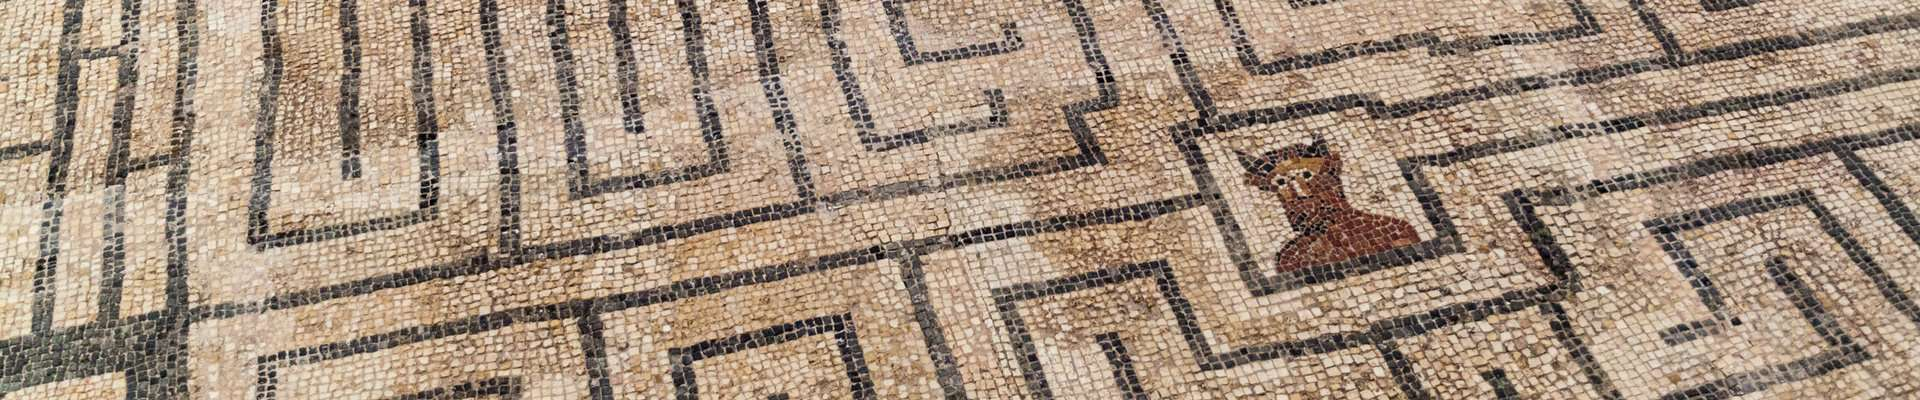 A mosaic at the Roman site of Conimbriga depicting a minotaur at the centre of a labyrinth.